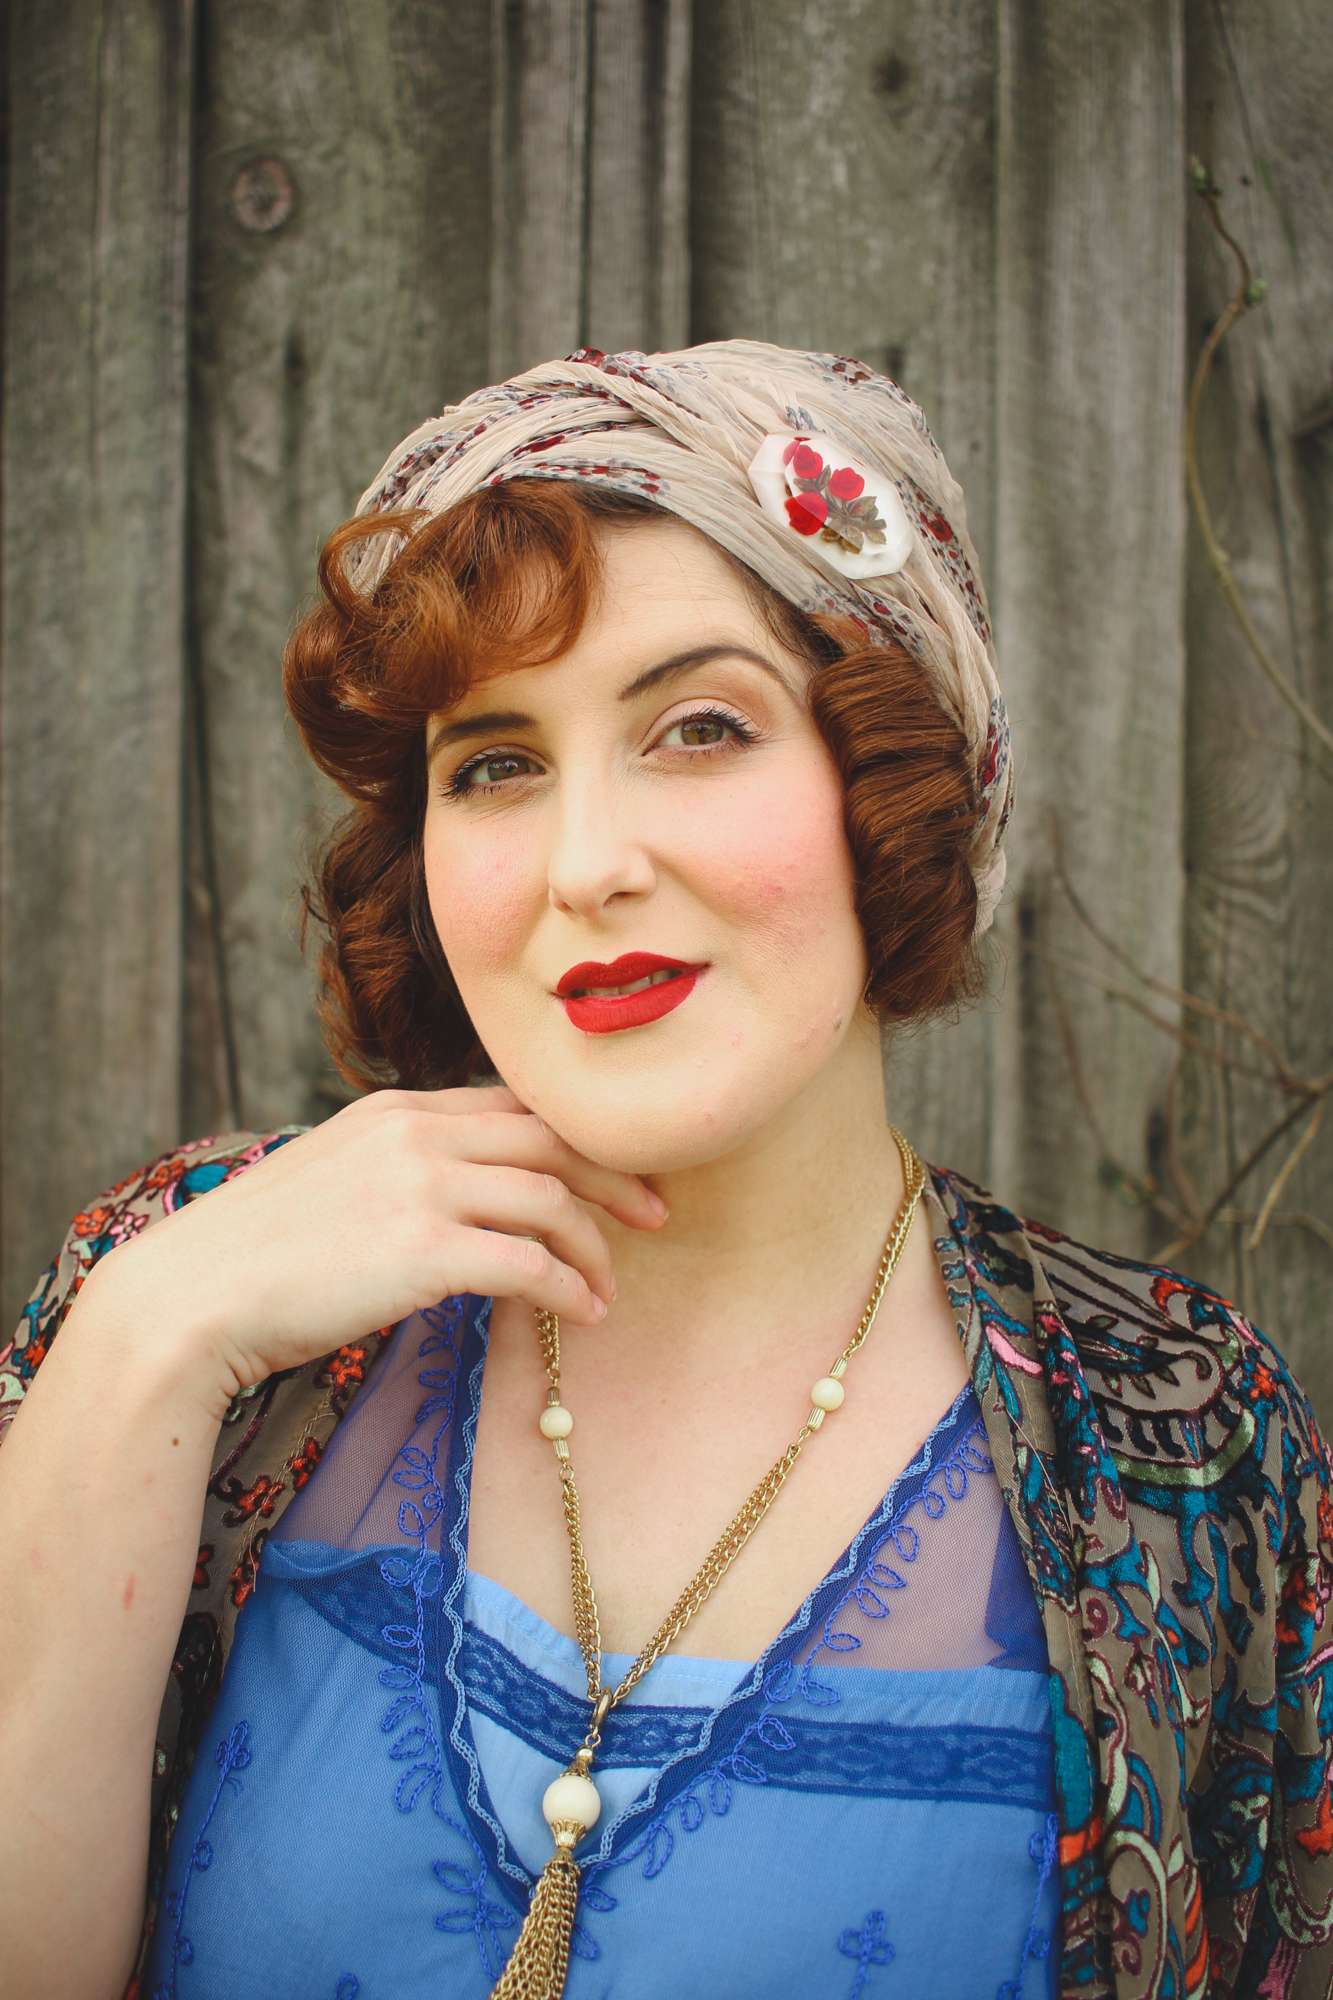 authentic 1920's hair and makeup